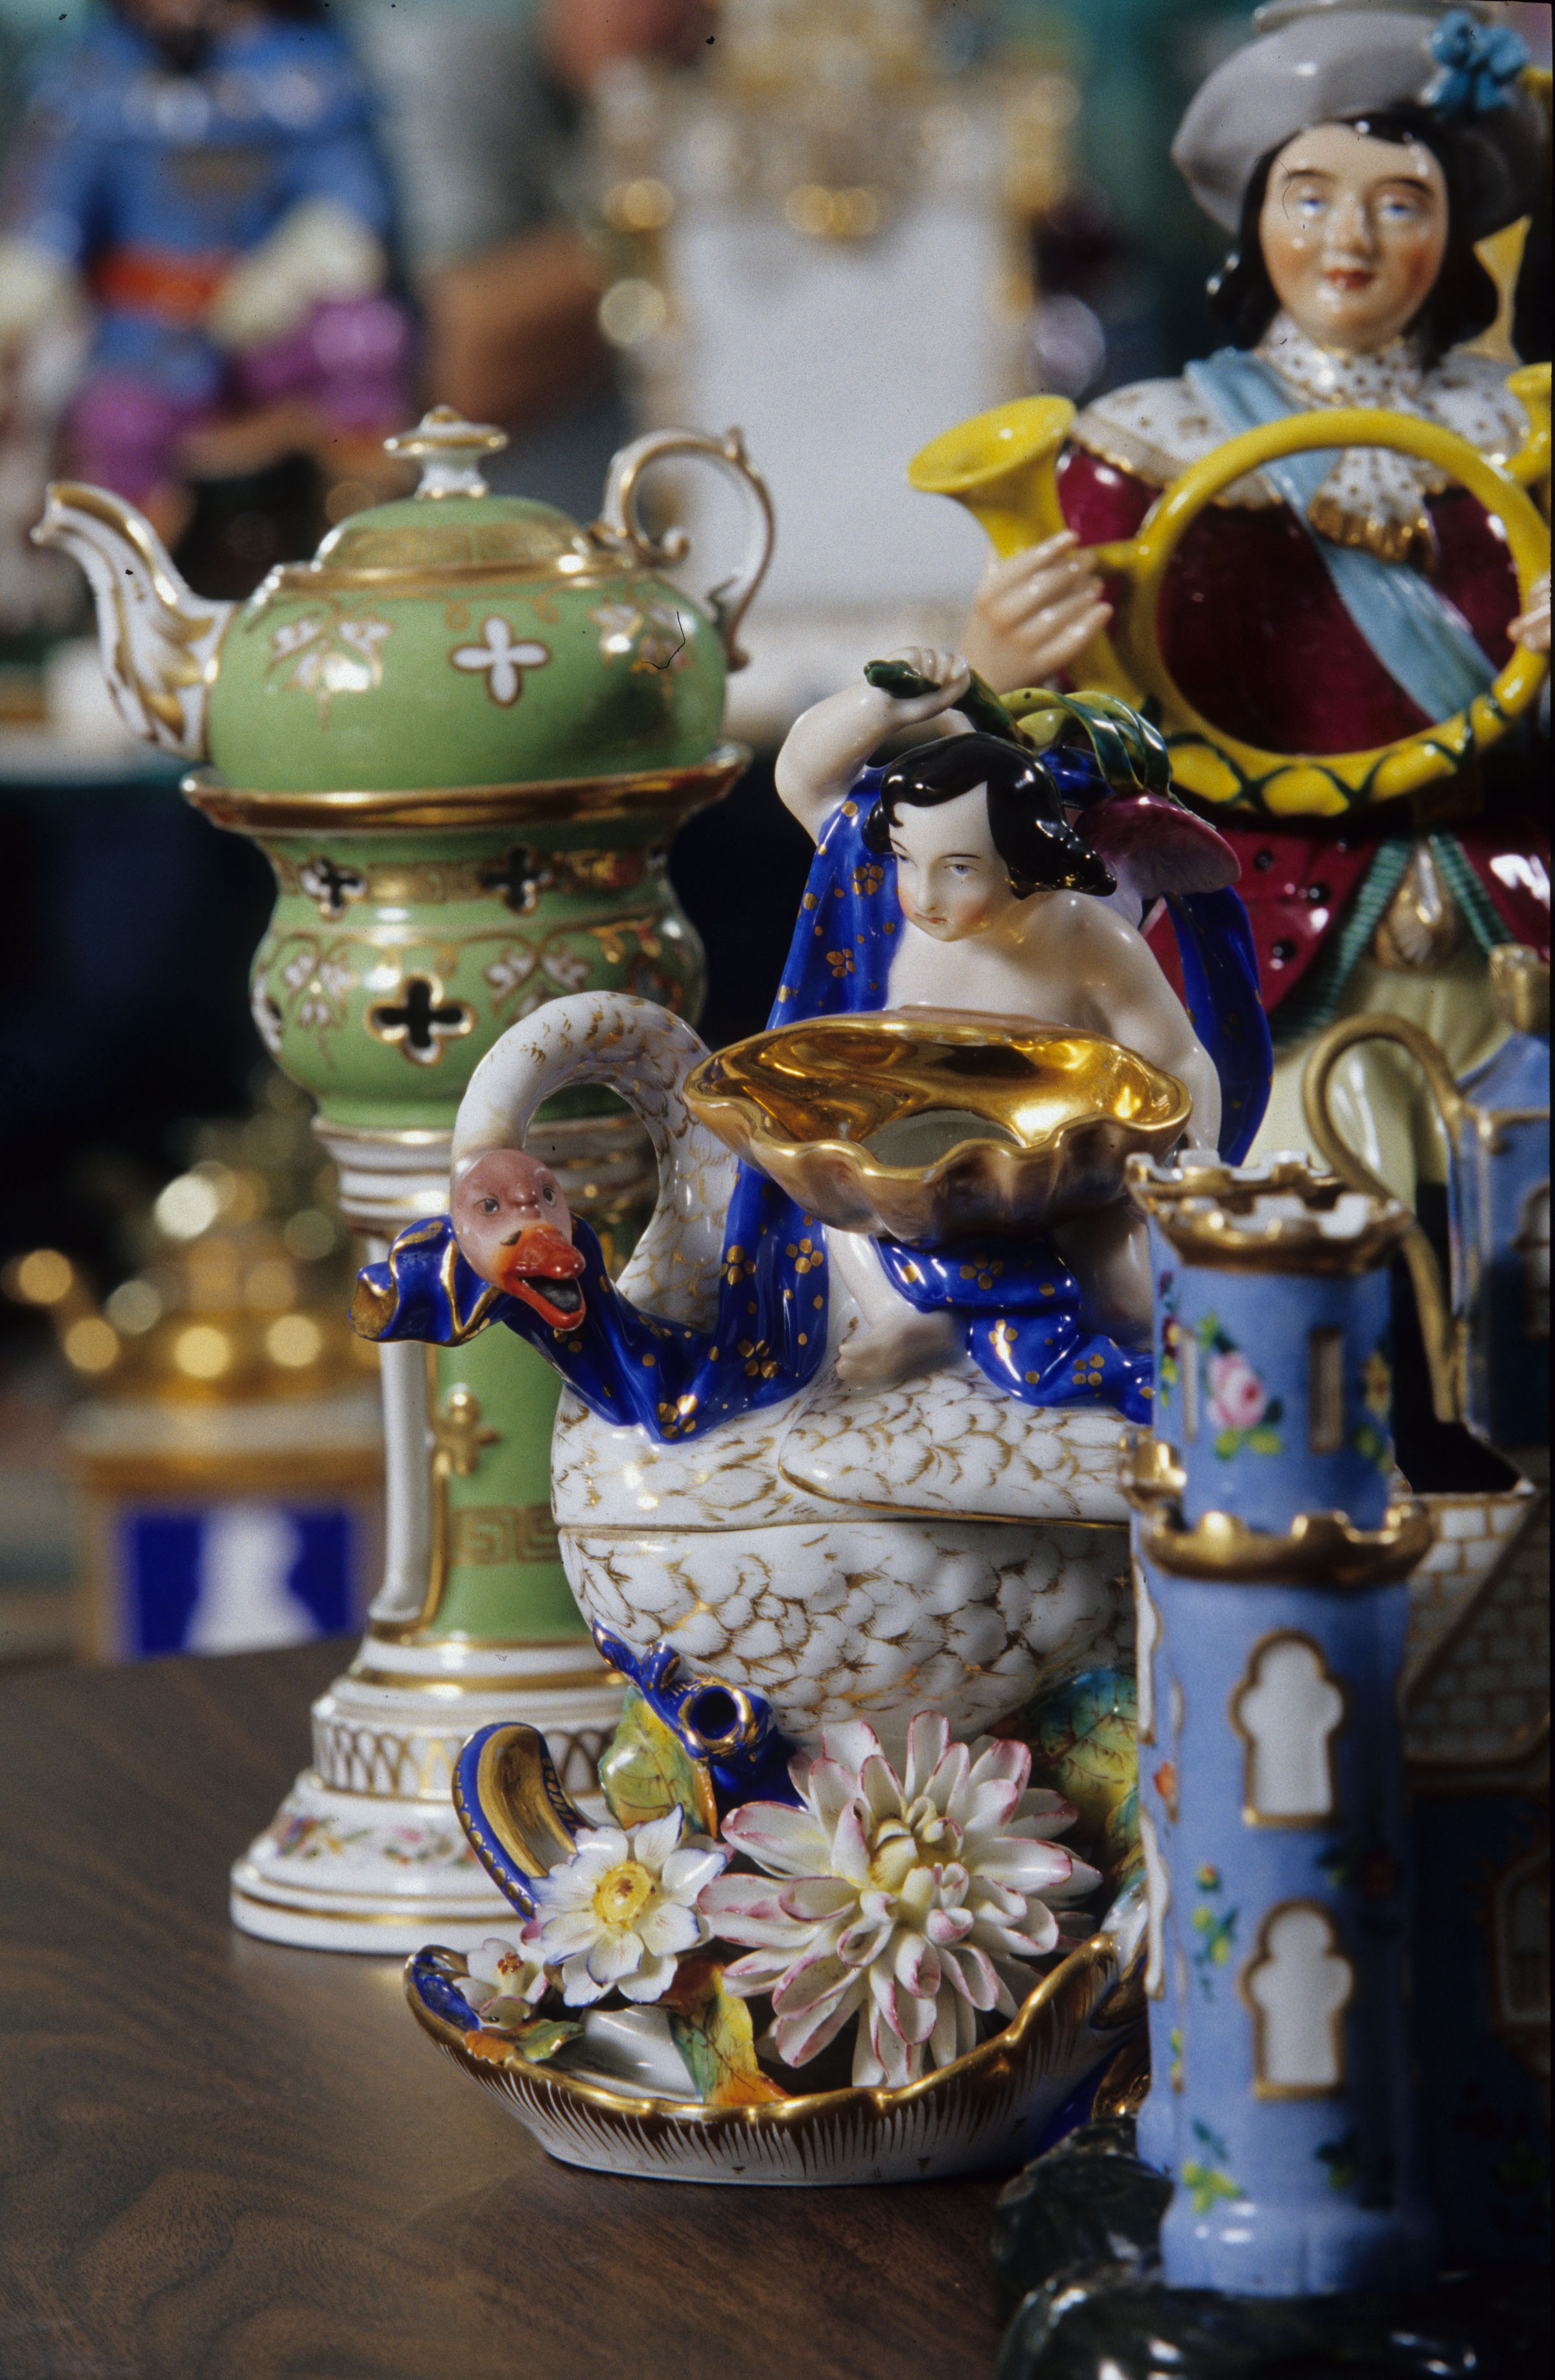 The rare teapot collection on display in Trenton, Tennessee